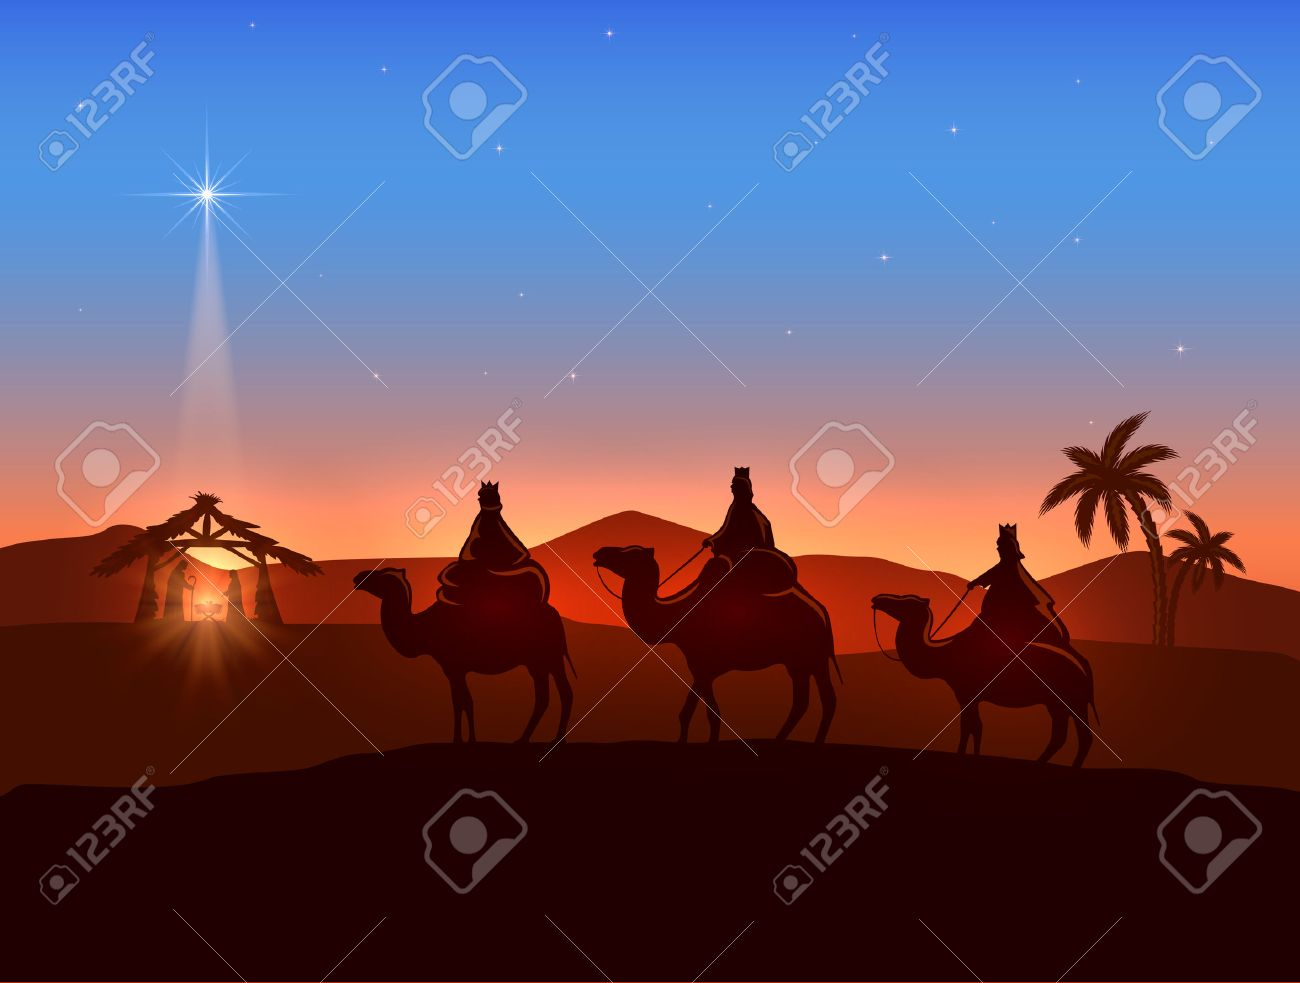 Christian Christmas background with three wise men and shining star, birth of Jesus, illustration. - 47879109